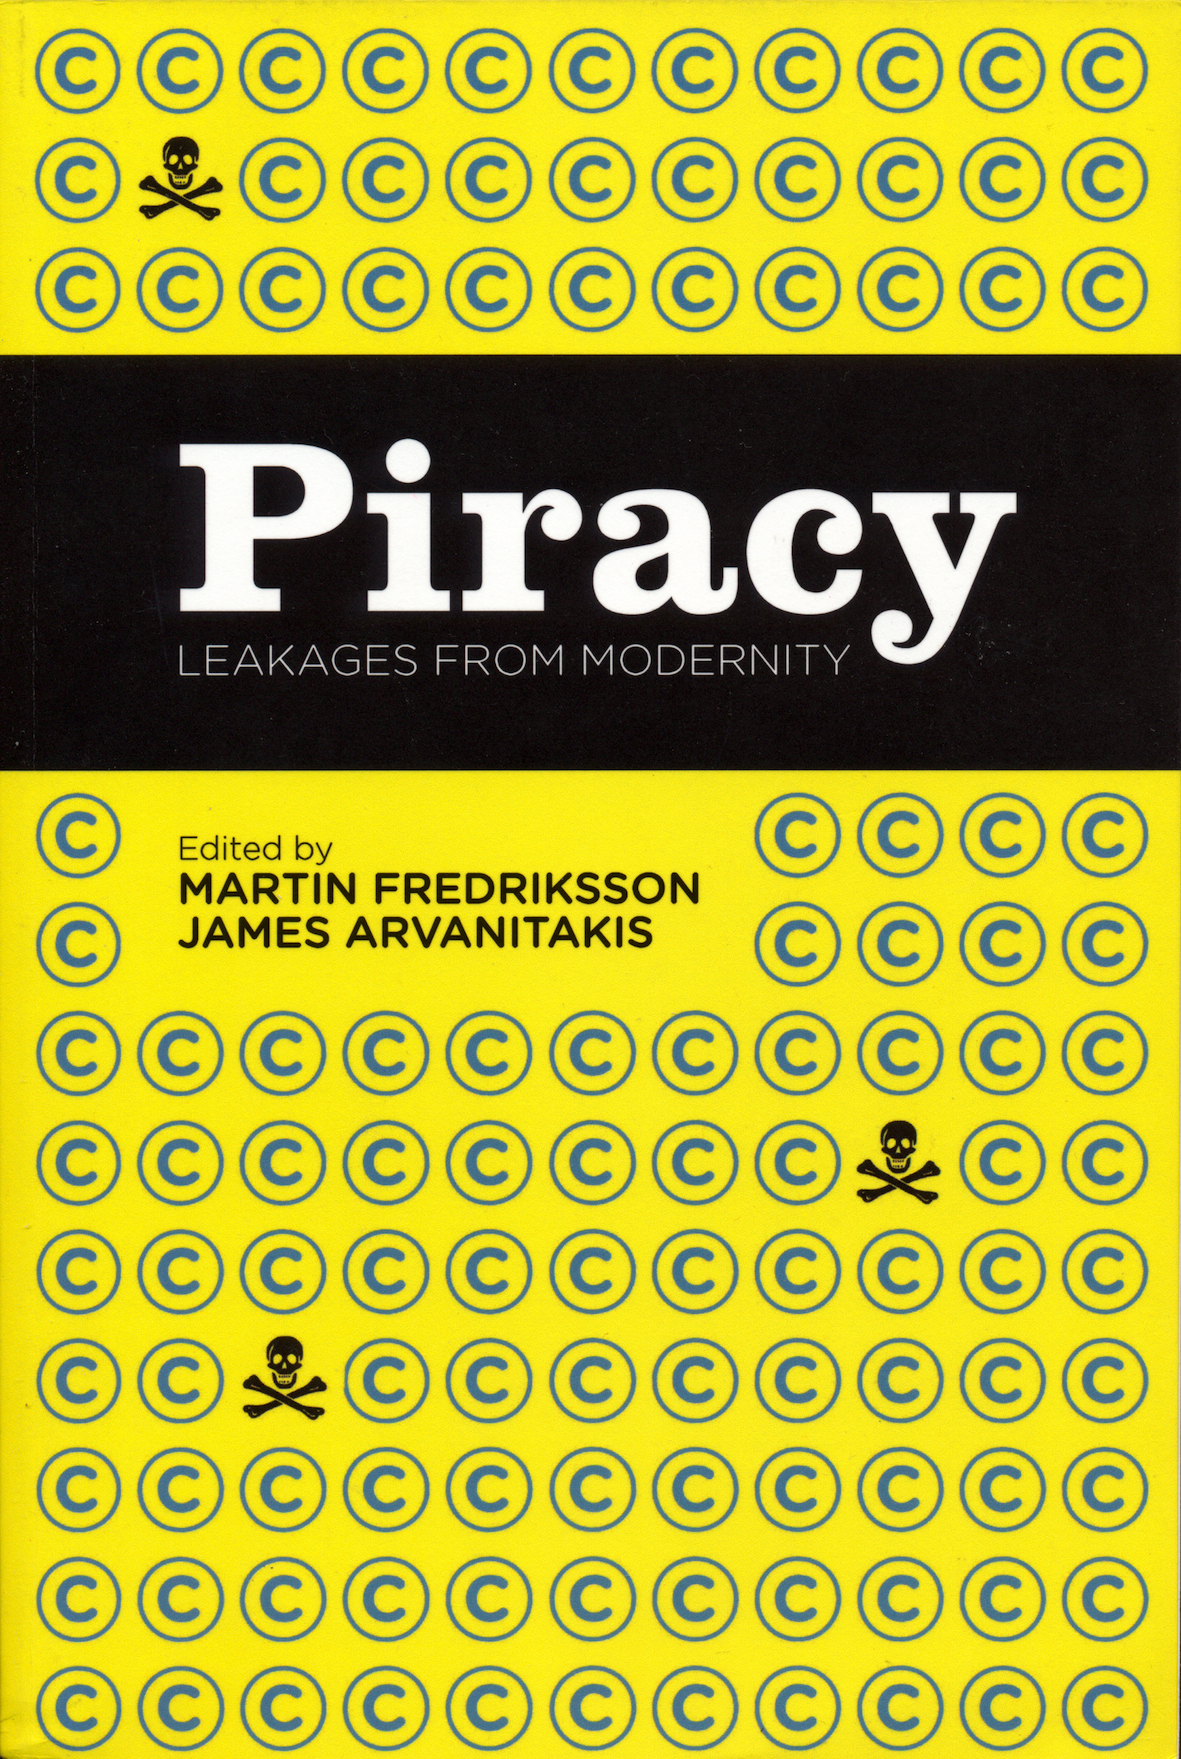 (edited by) Martin Fredriksson, James Arvanitakis Piracy- Leakages from Modernity.